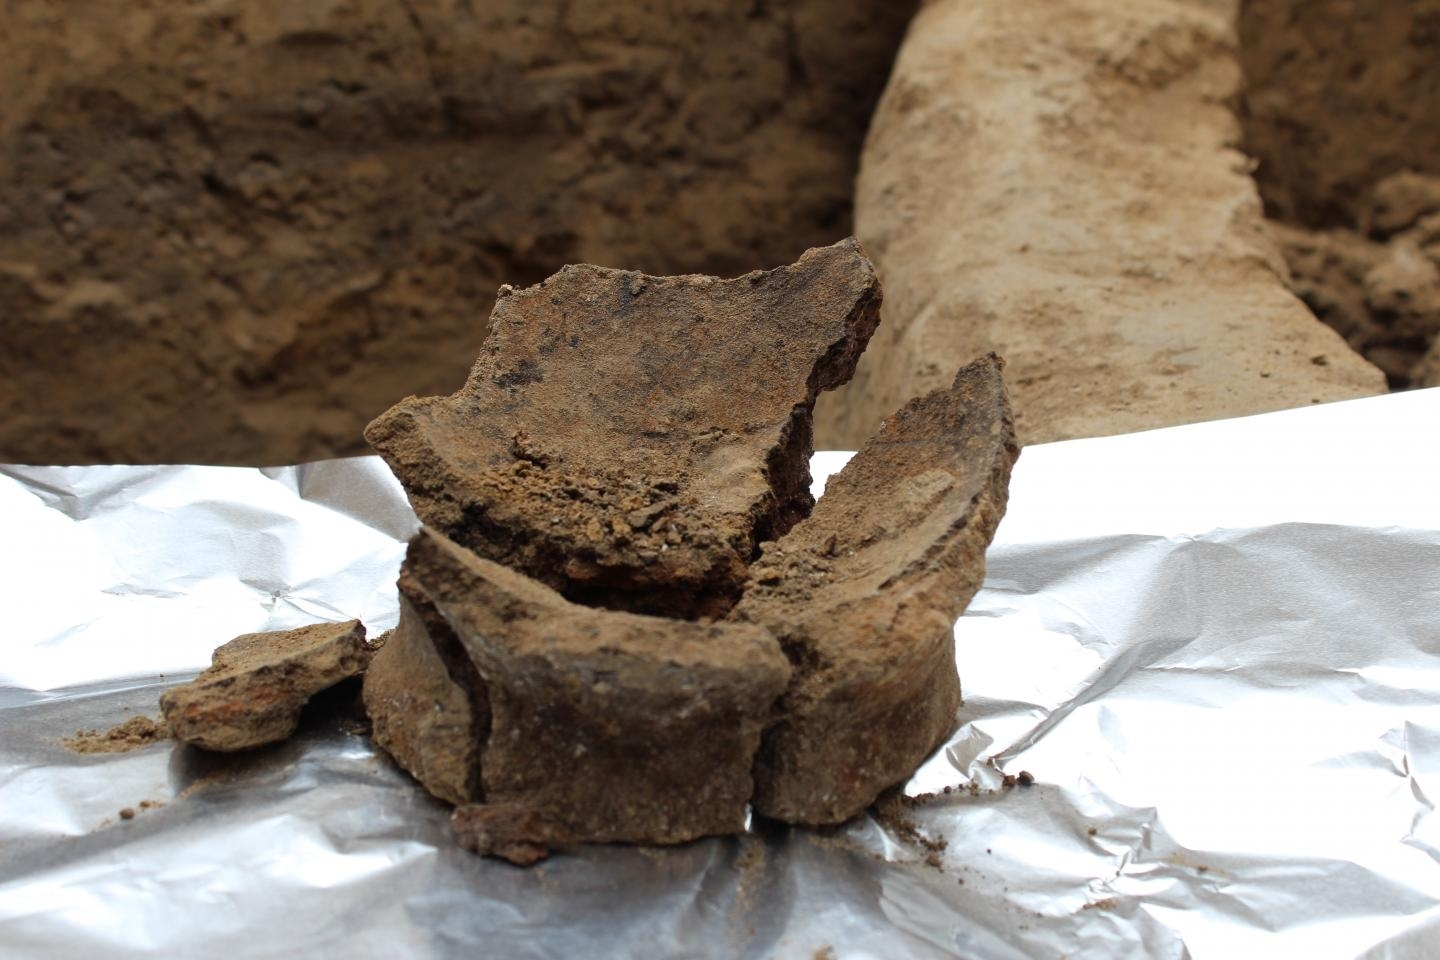 Base of Neolithic jar uncovered in Georgia